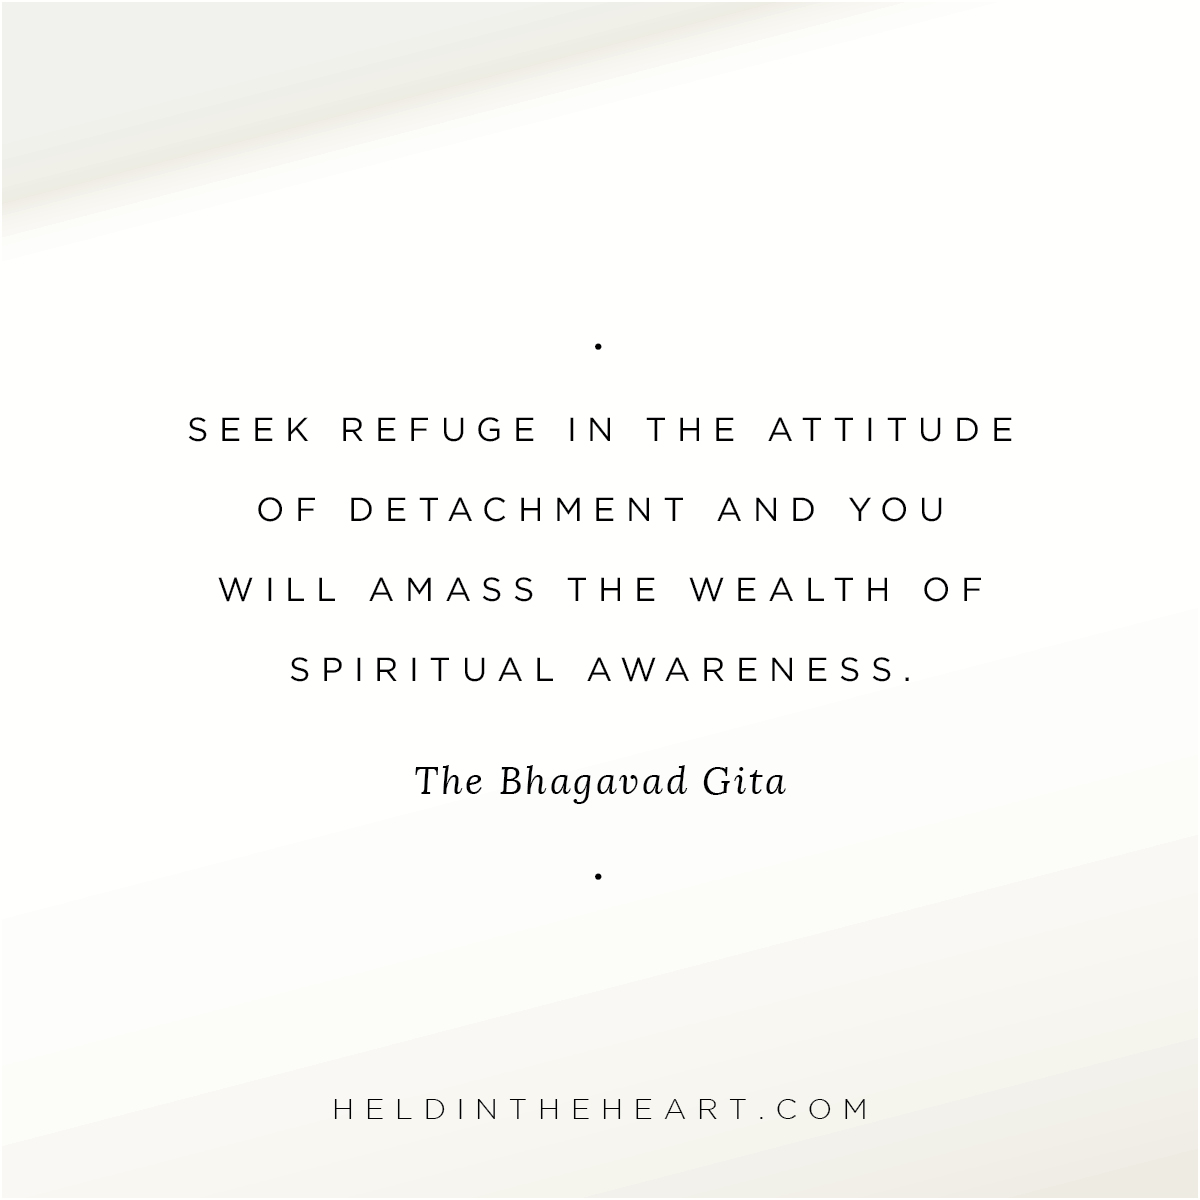 Bhagavad Gita Quote, Held In The Heart